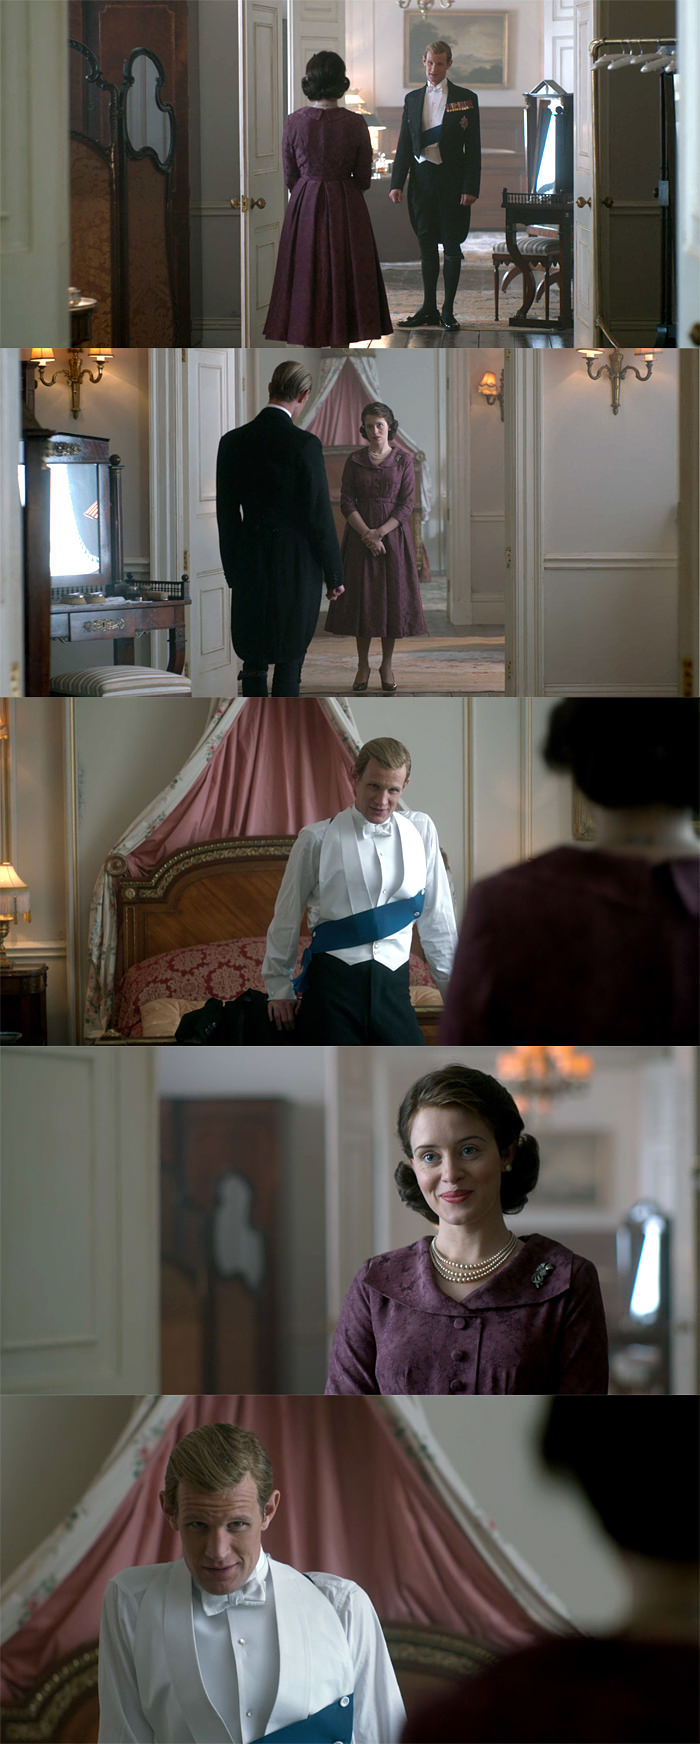 the-crown-style-season-1-episode-7-netflix-costumes-tom-lorenzo-site-17